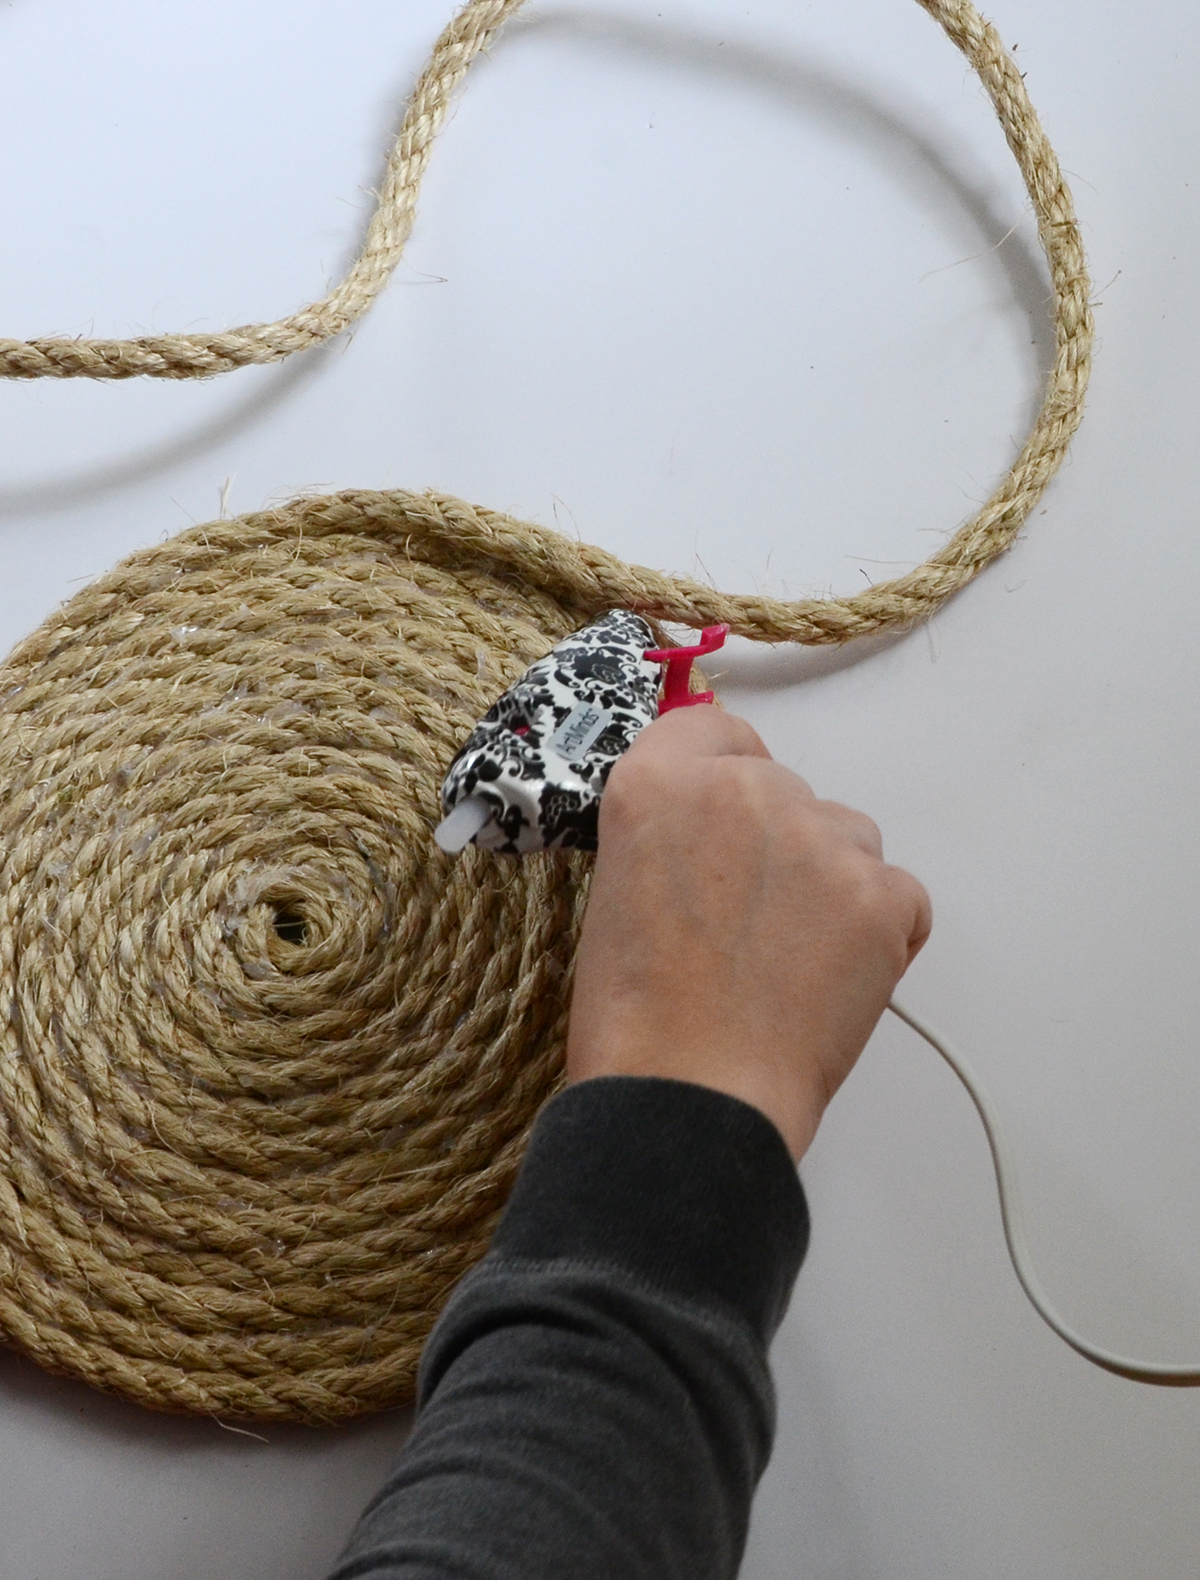 Rope Basket DIY 2